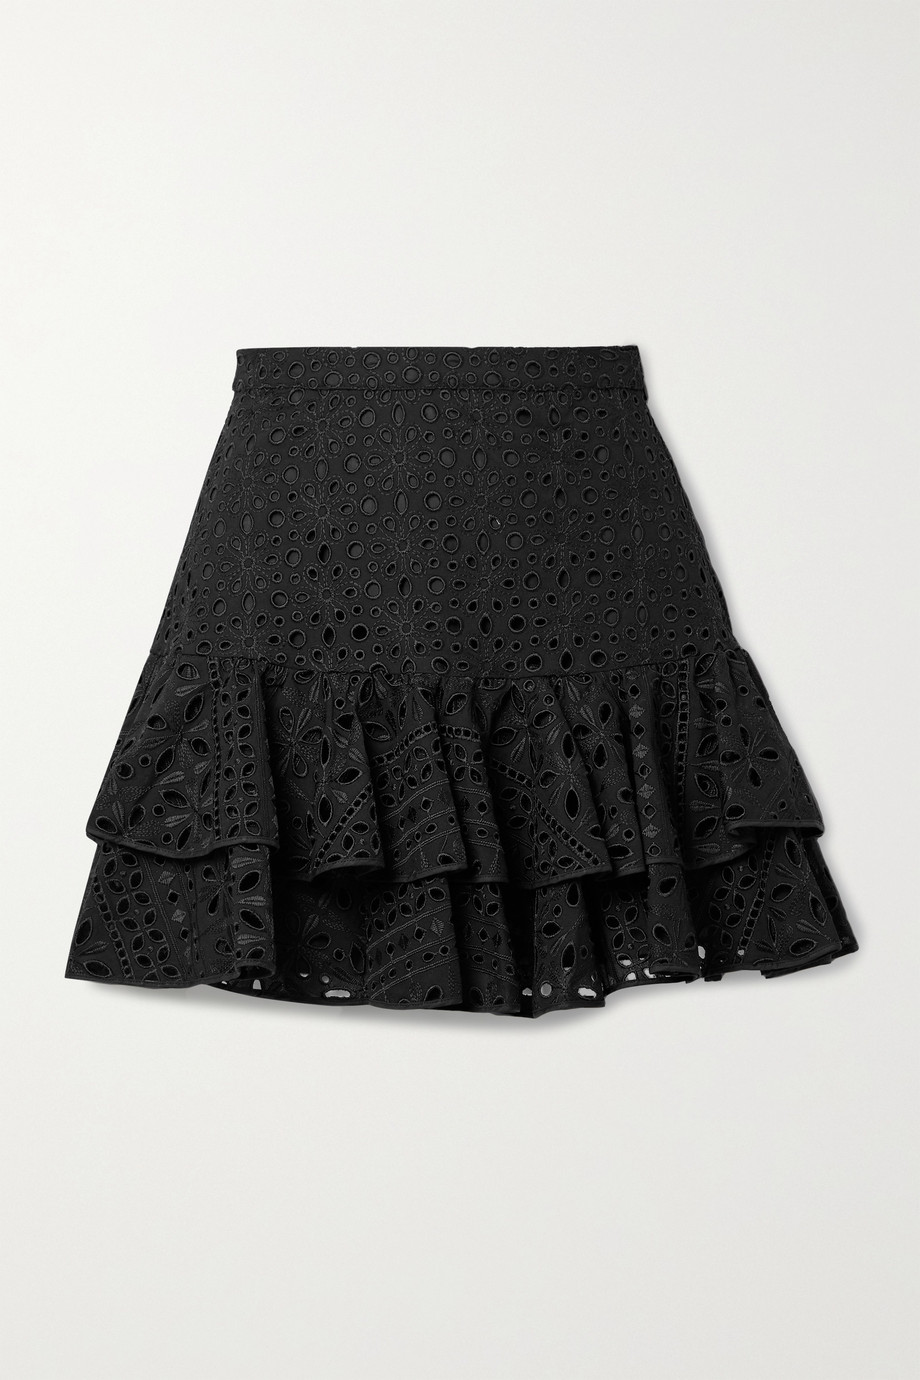 Charo Ruiz Natalie tiered broderie anglaise cotton-blend mini skirt